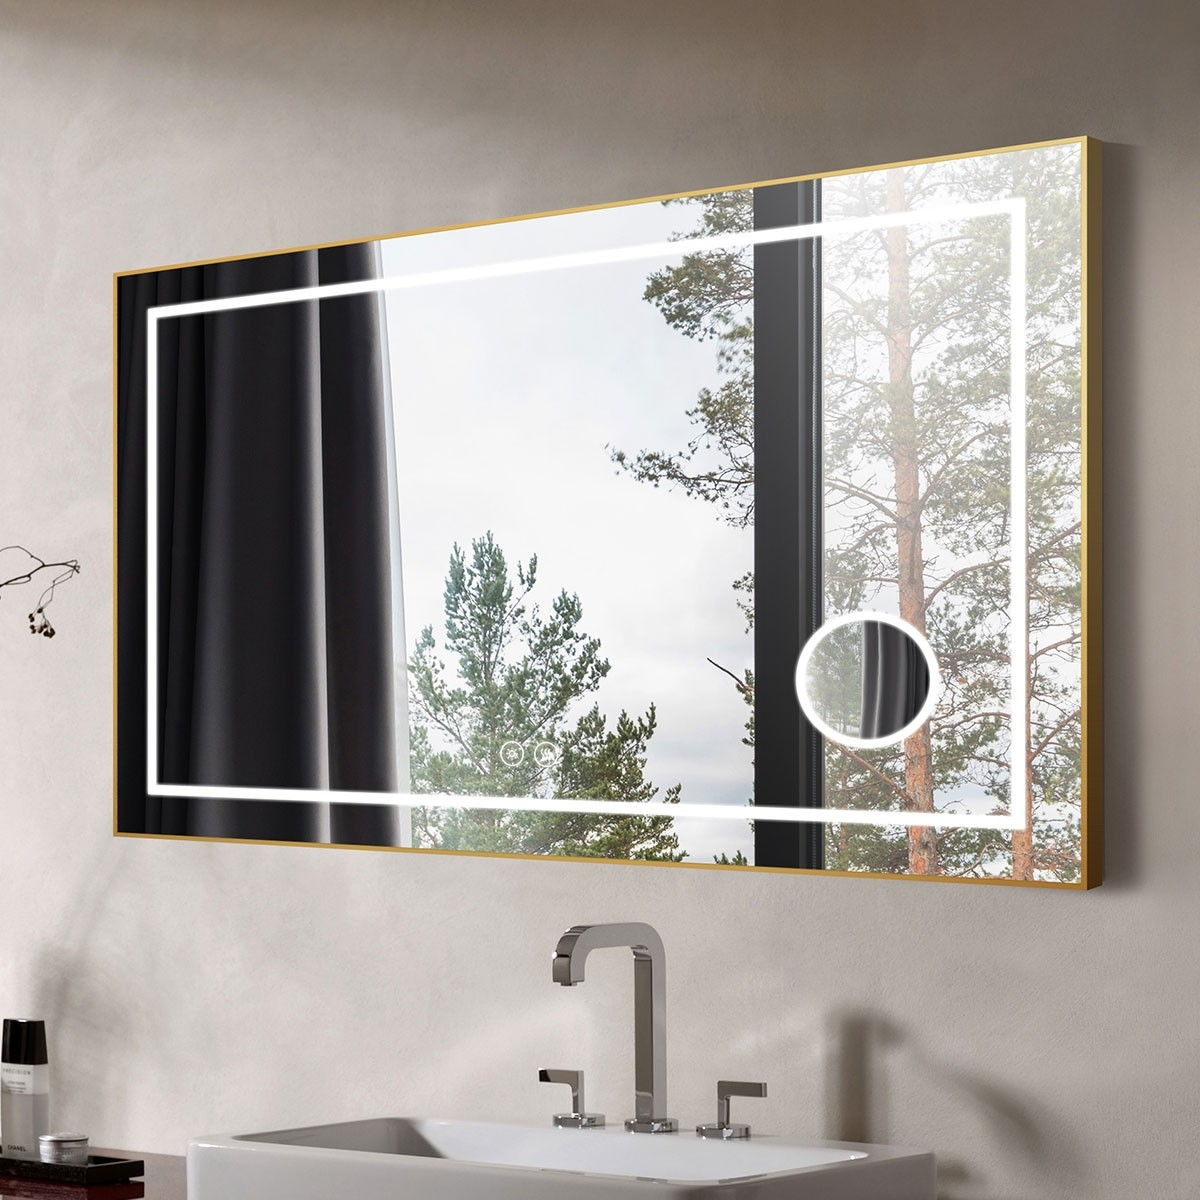 DECORAPORT 55 x 36 Inch LED Bathroom Mirror with Touch Button, Light Luxury Gold, Anti Fog, Dimmable,Bluetooth Speakers, Magnifier, Horizontal Mount (D721-5536AC)